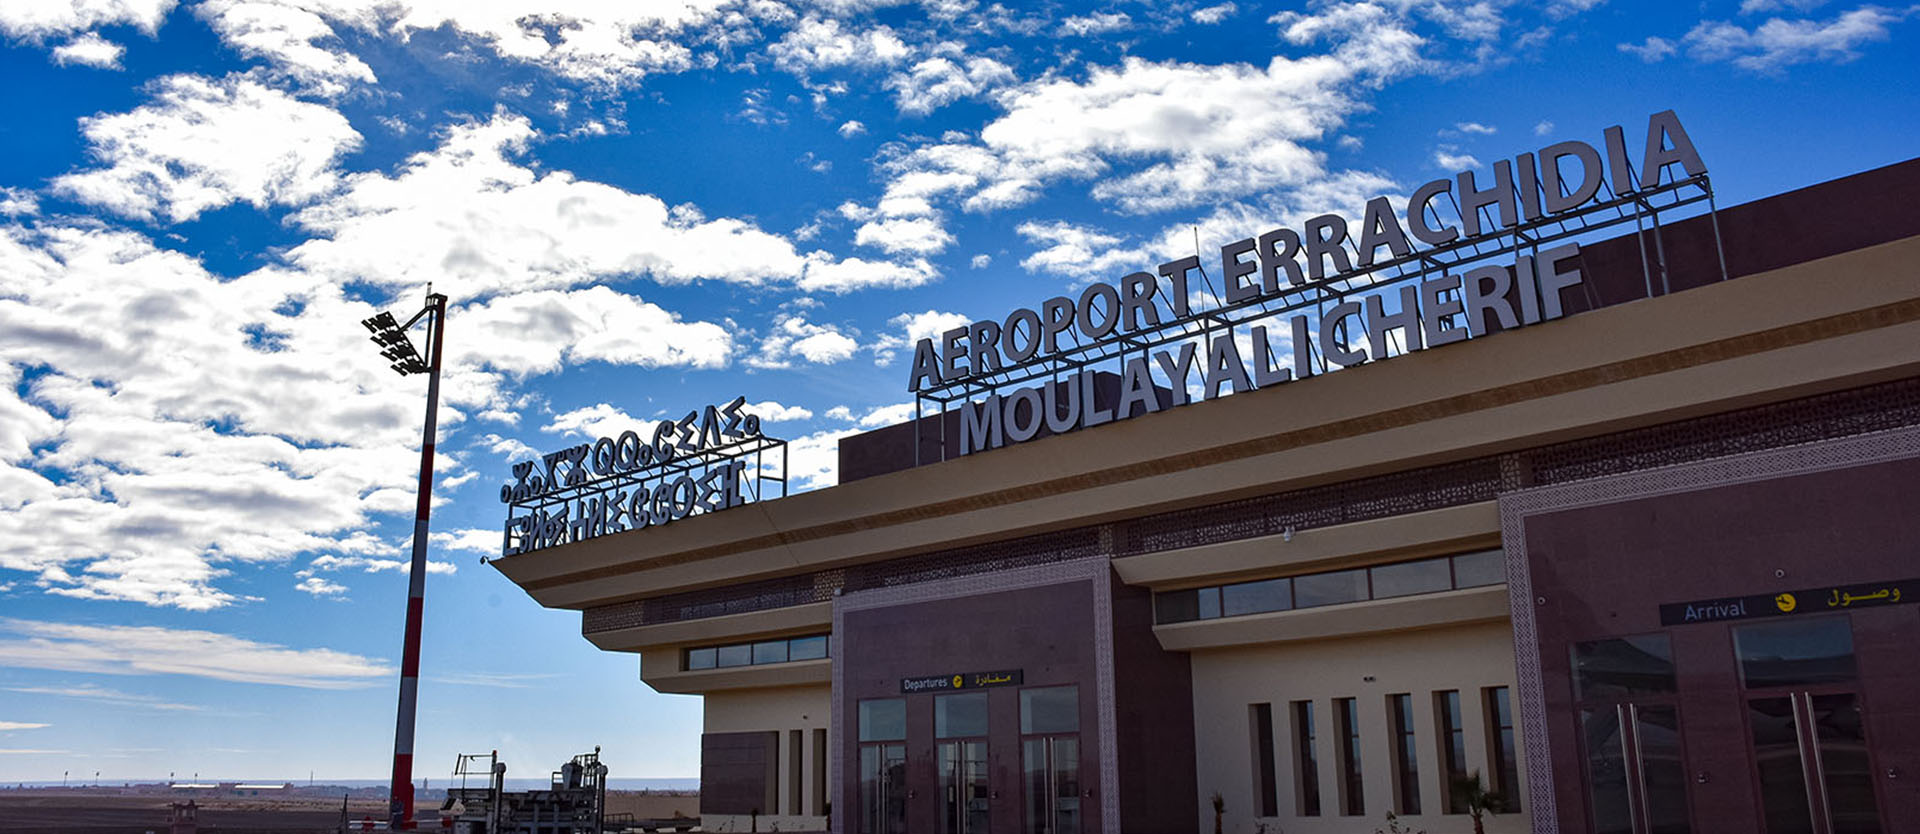 Aéroport Moulay Ali Cherif